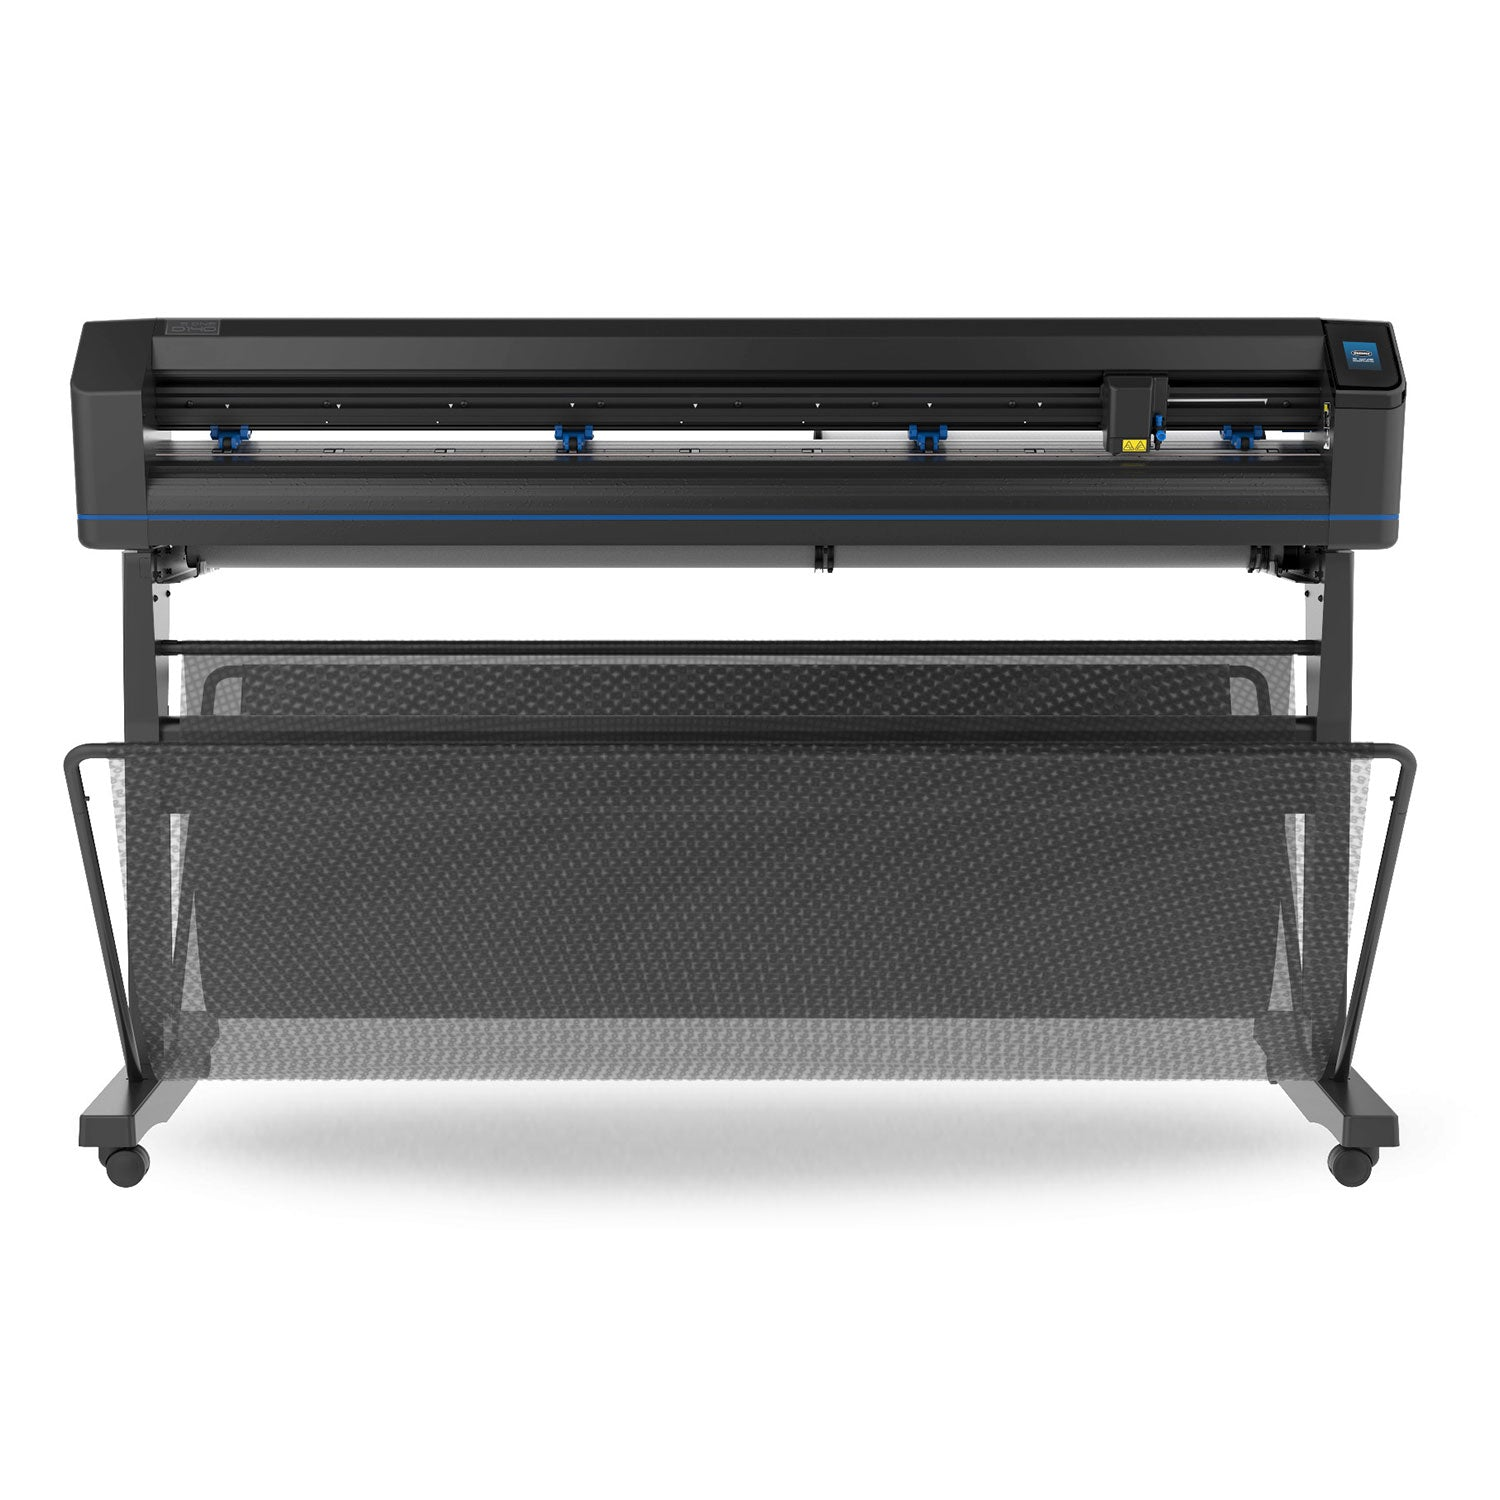 Summa S One D140FX Vinyl Cutter